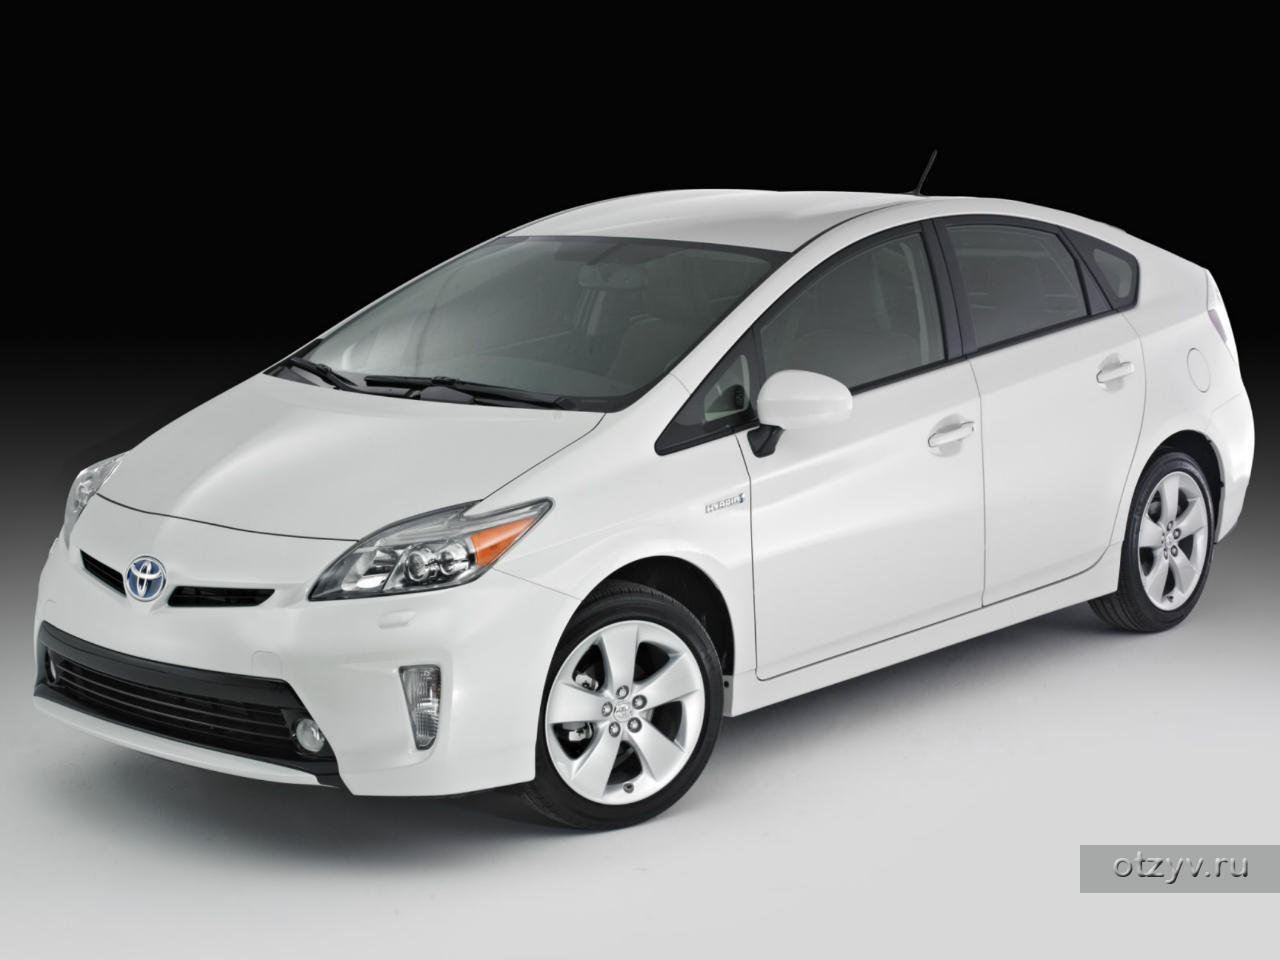 toyota prius distribution channel Designed with families and active lifestyles in mind, the 2017 toyota prius v features a spacious and versatile interior with plenty of cargo space, intelligent technologies, and the fuel efficient performance that you expect from a toyota hybrid, all wrapped up in a stylish and aerodynamic exterior.